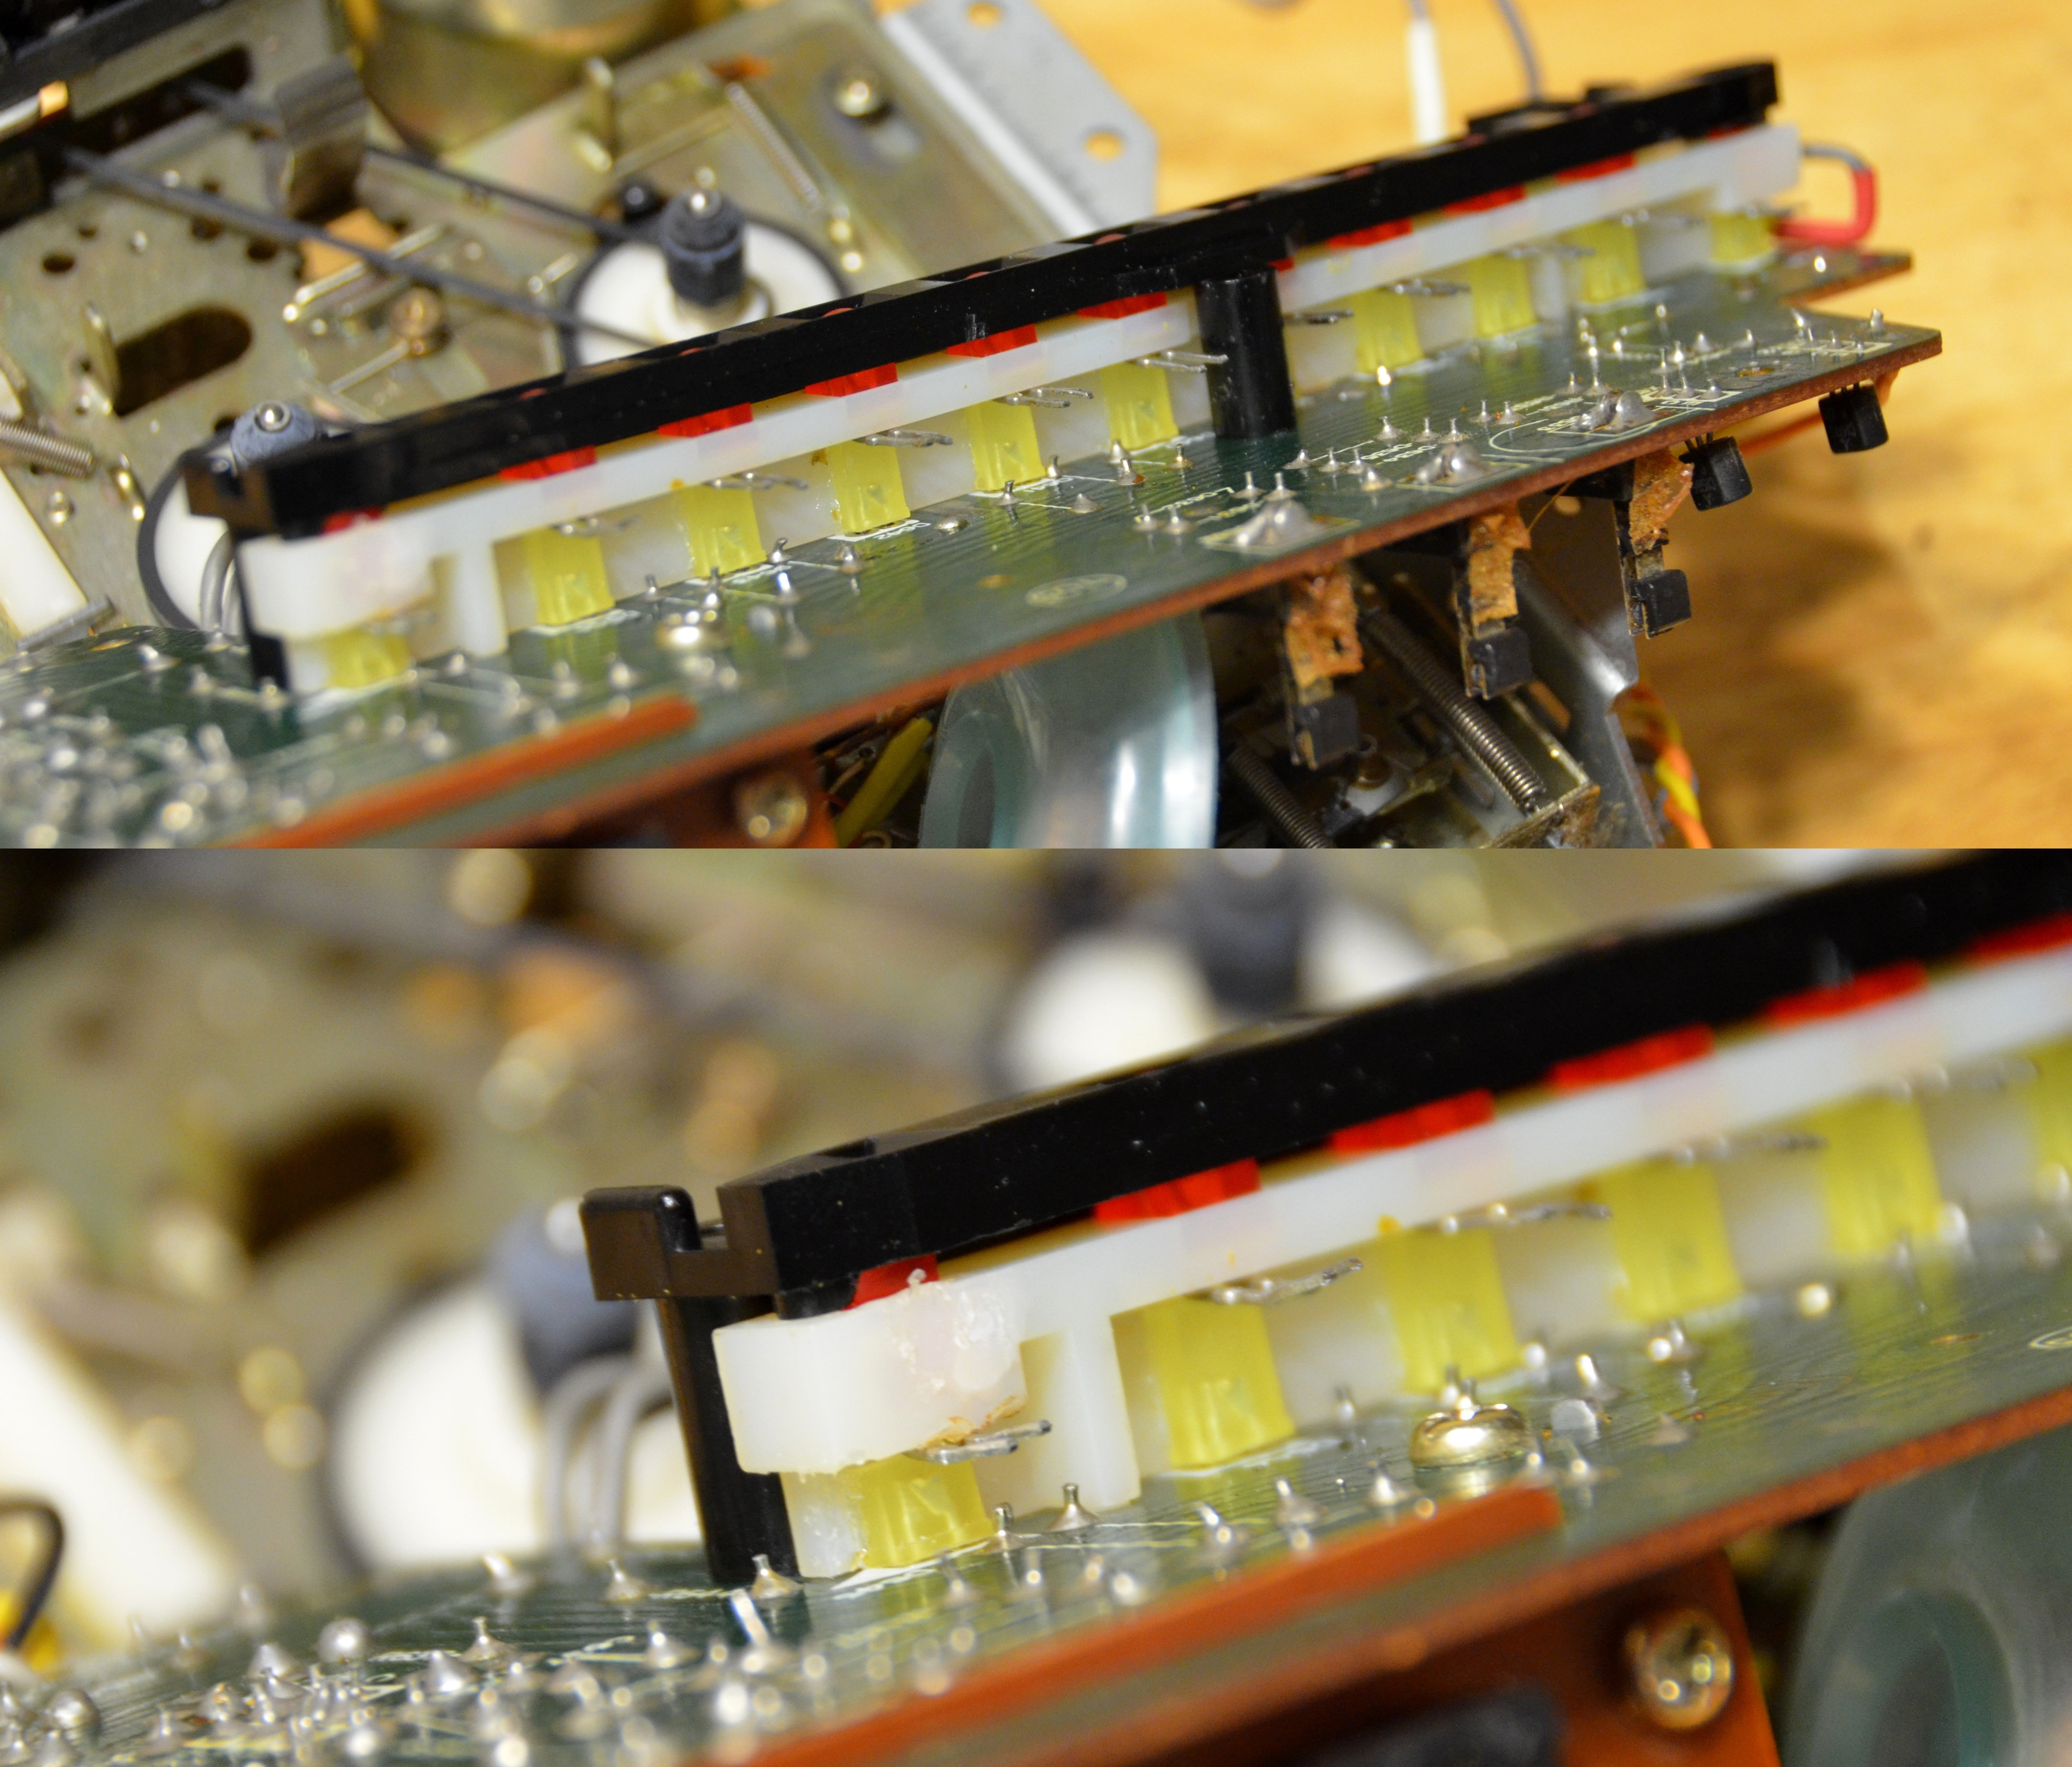 M70 Led Meter Mod Restorations Customizations Boomboxery Lm3915 Vu Not Working Properly Electrical Engineering 15947710439 2eb9dea8c2 O 15513676963 E766fceddd